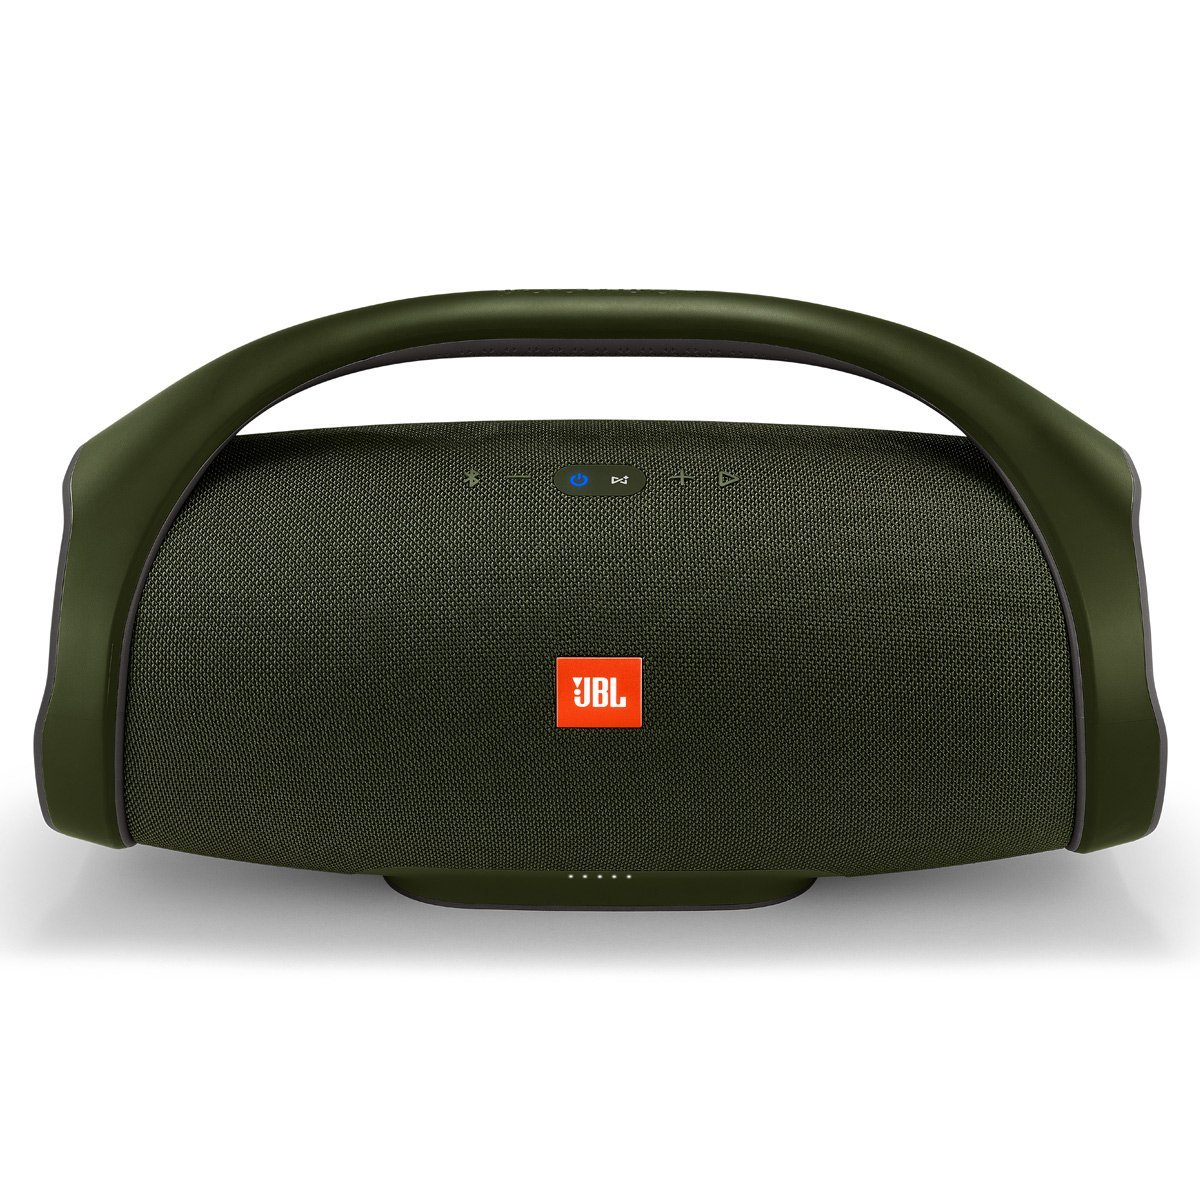 JBLBOOMBOXGRN JBL Boombox Portable Bluetooth Waterproof